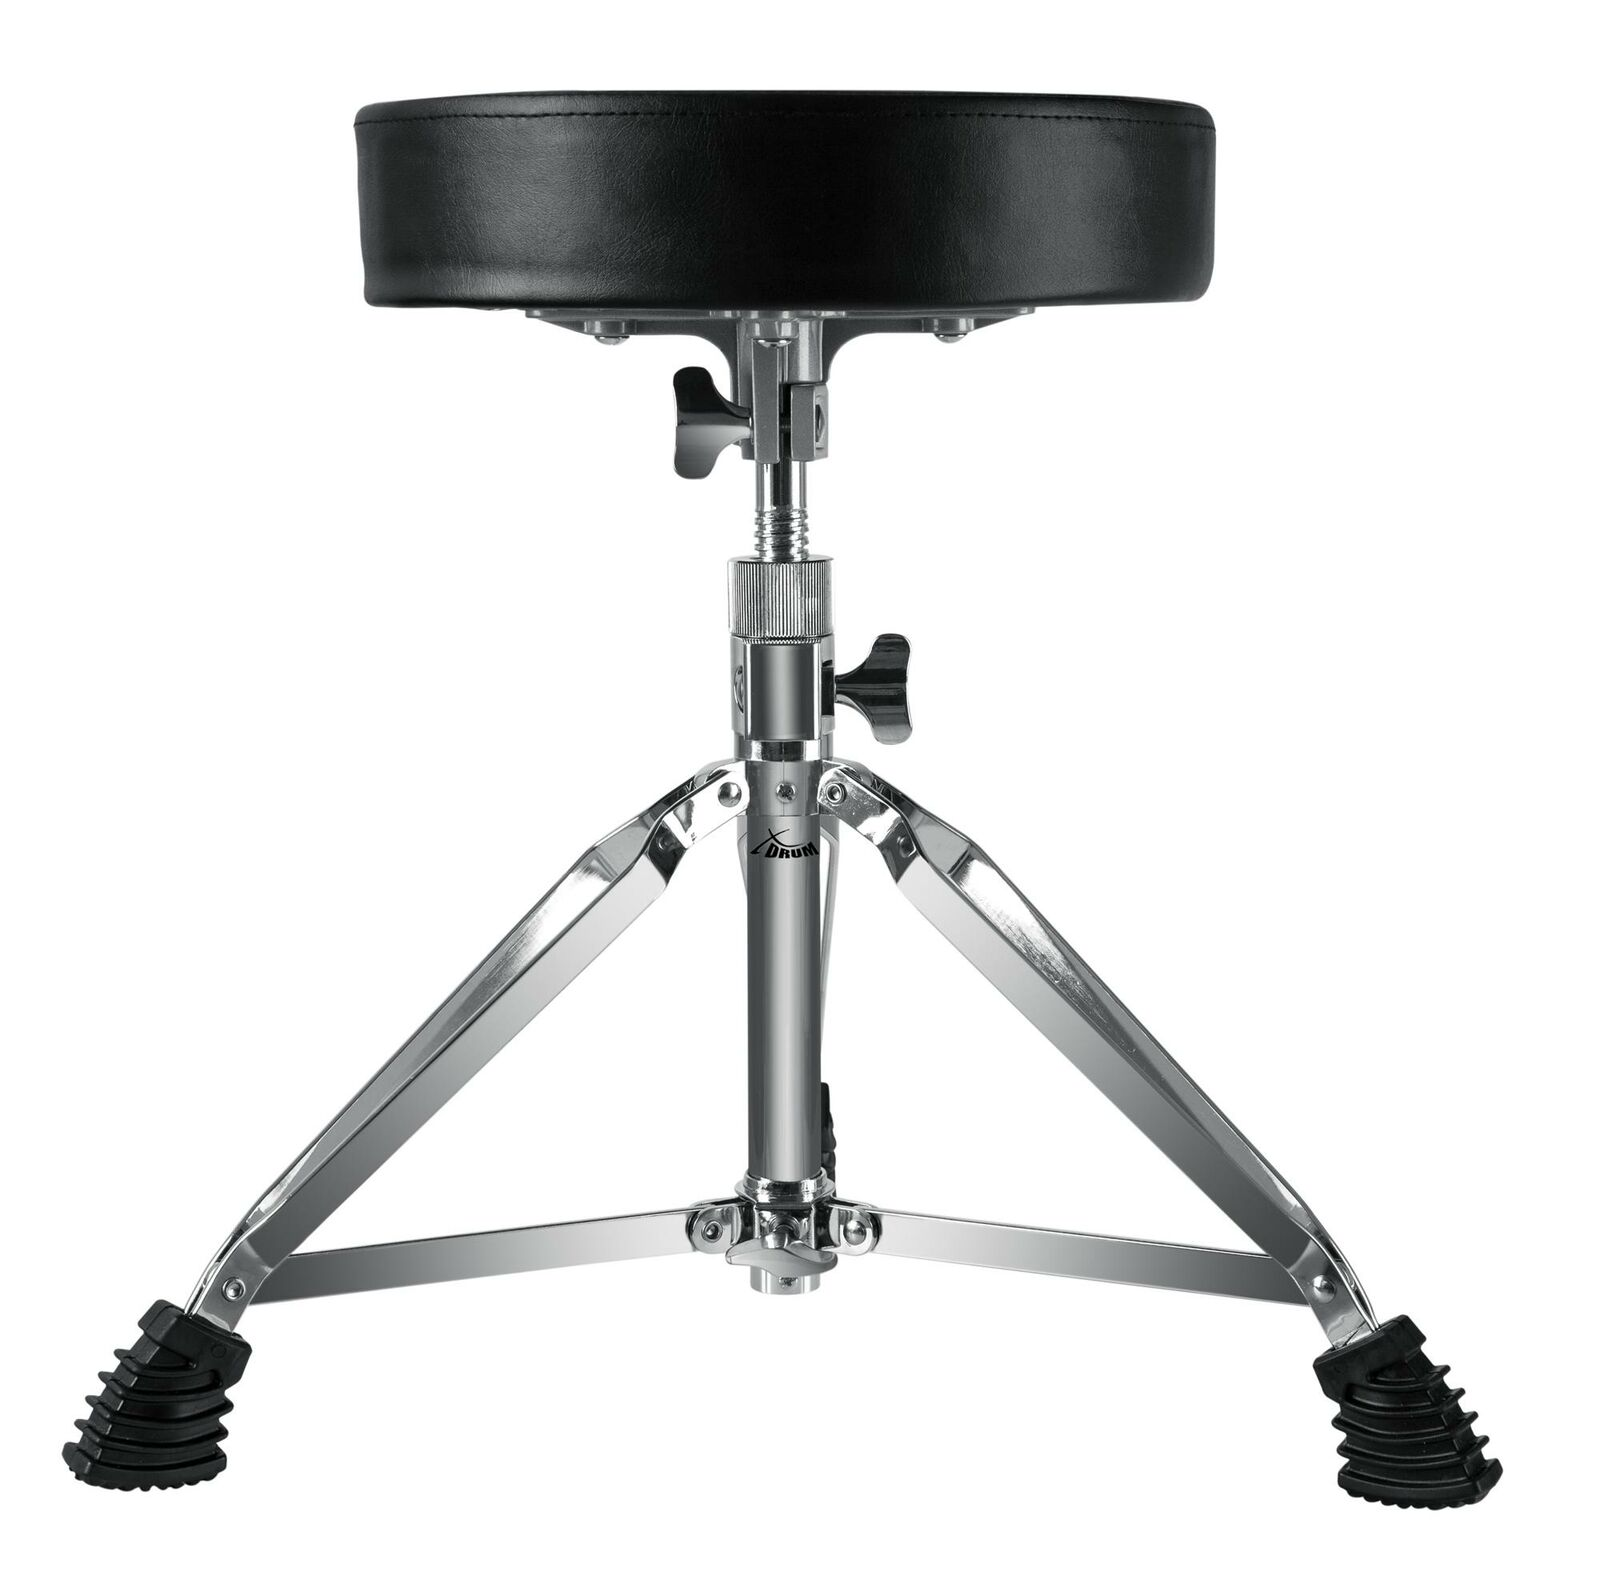 Drum Percussion Stool Seat Double Braced Chair Rubber Feet Adjustable 47-60cm